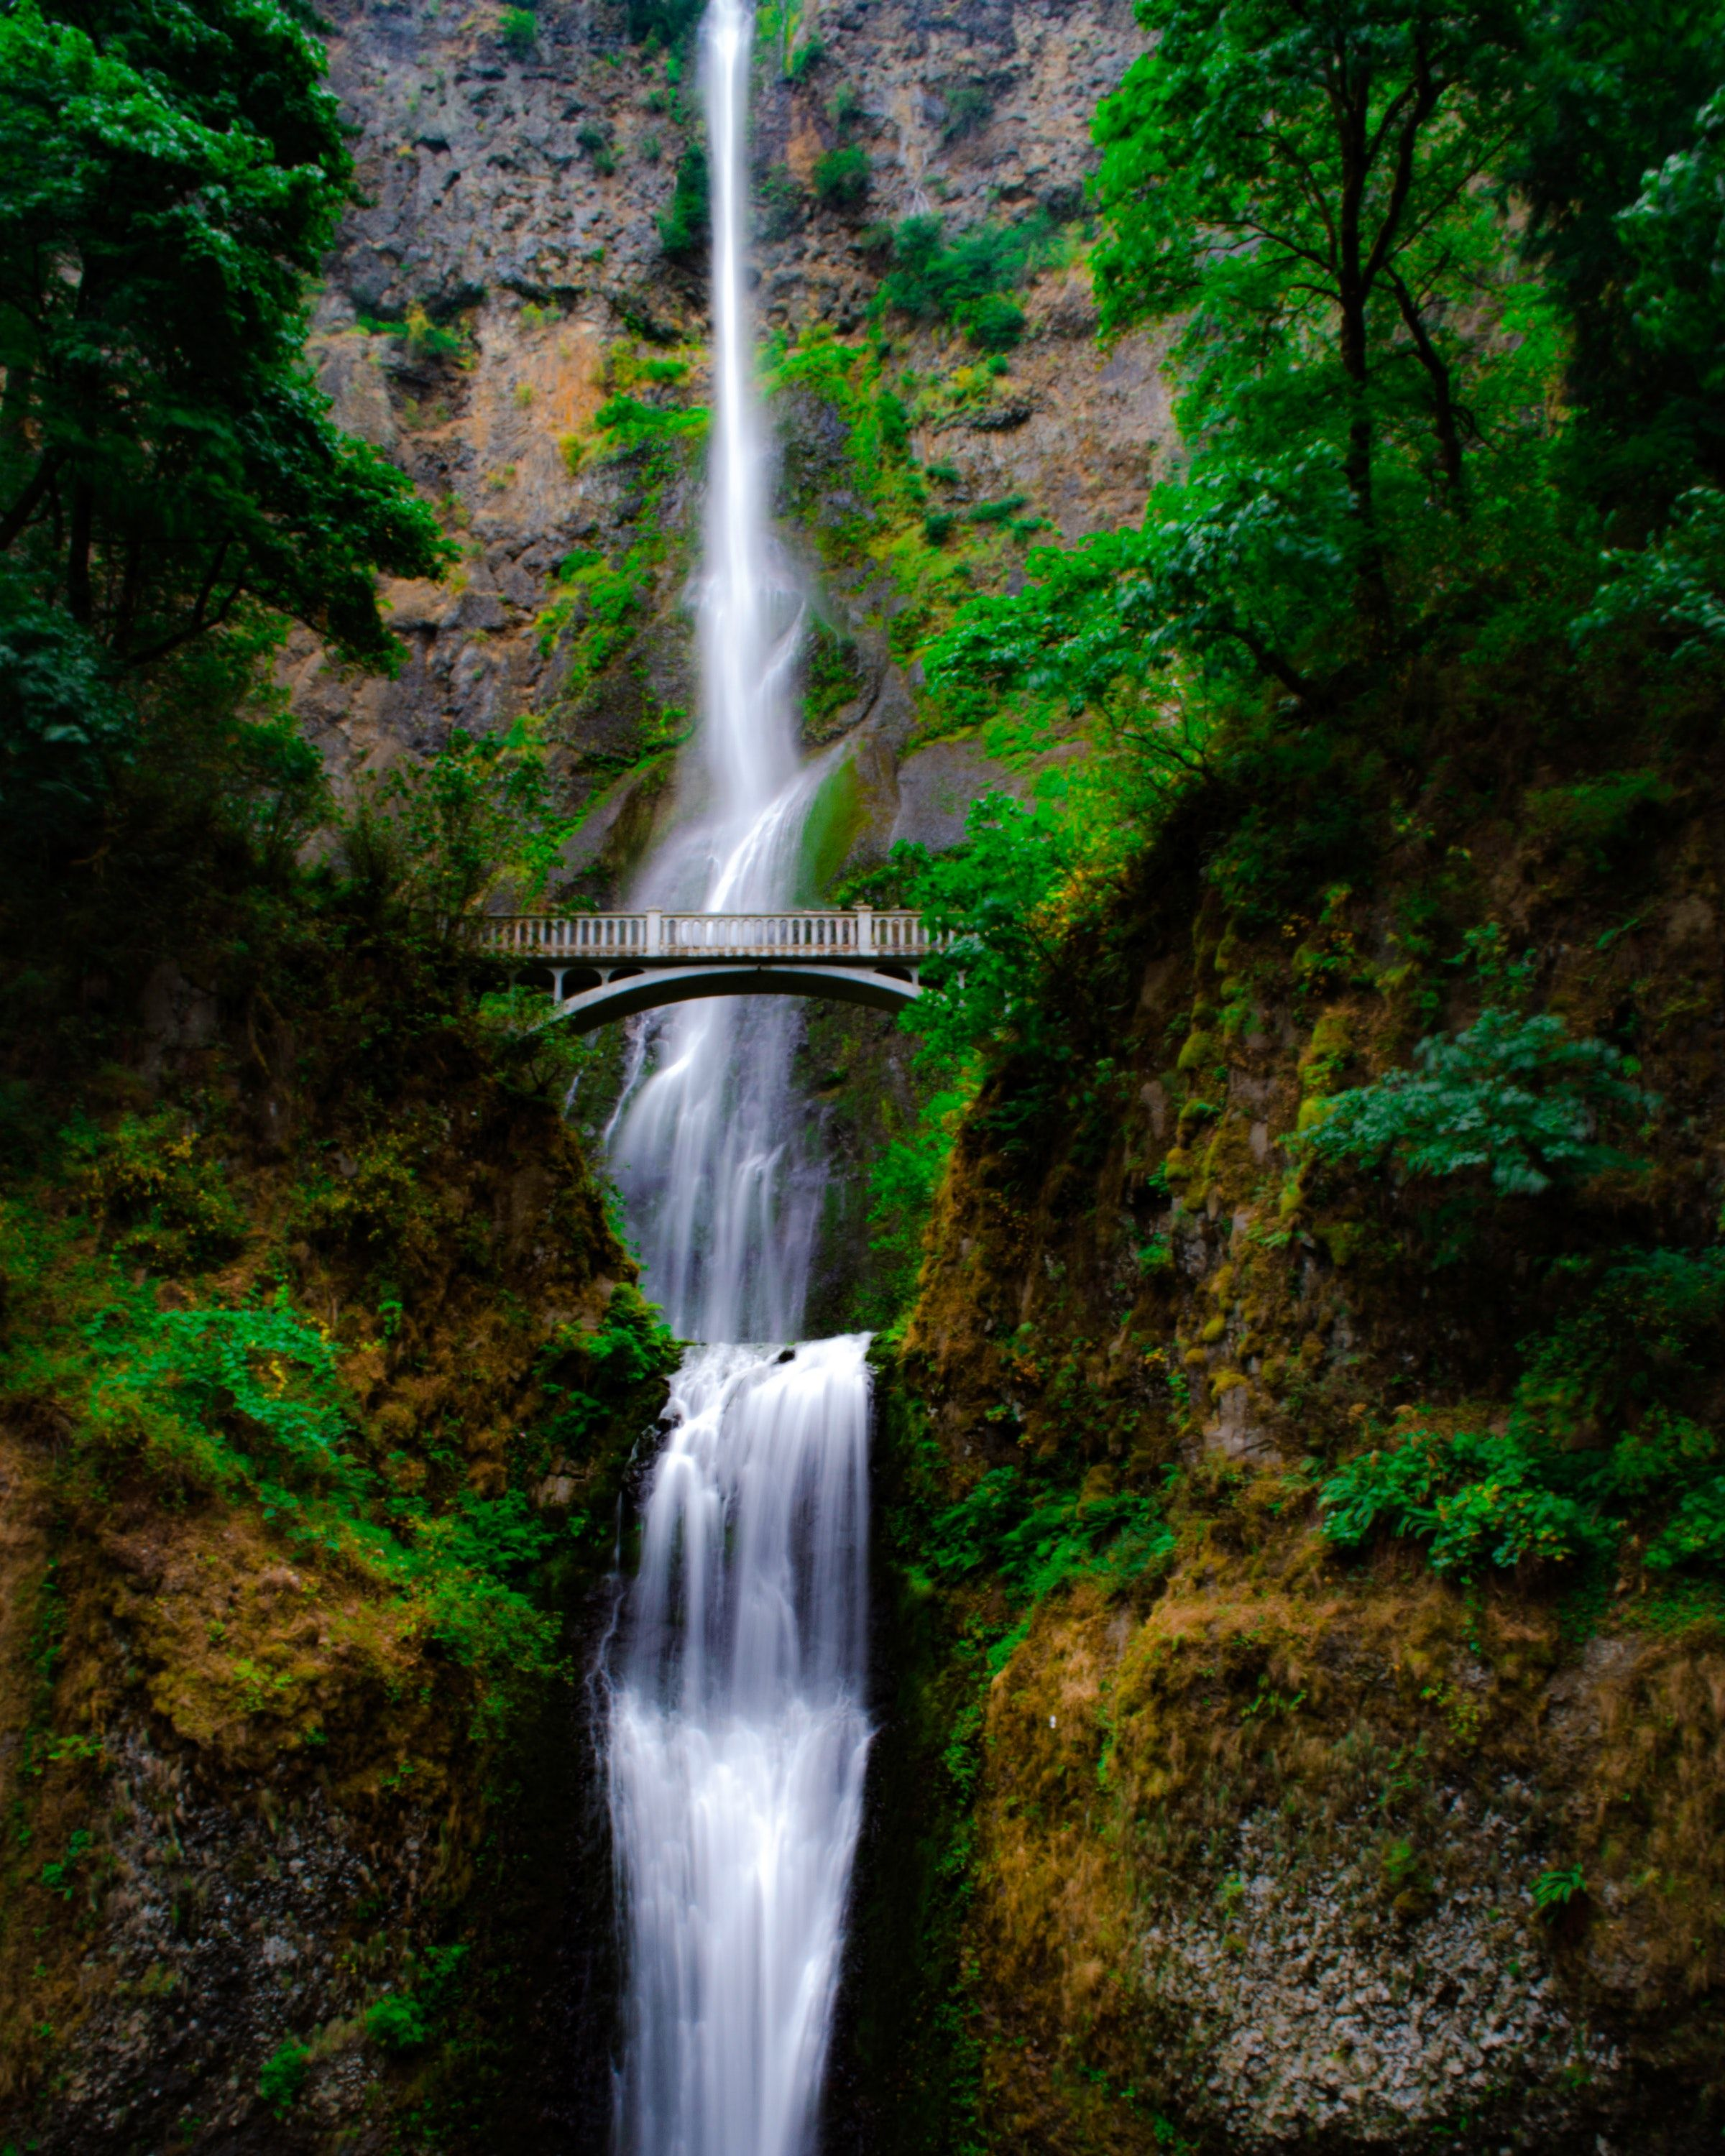 #Nature #wallpaper #waterfall #columbia River #oregon